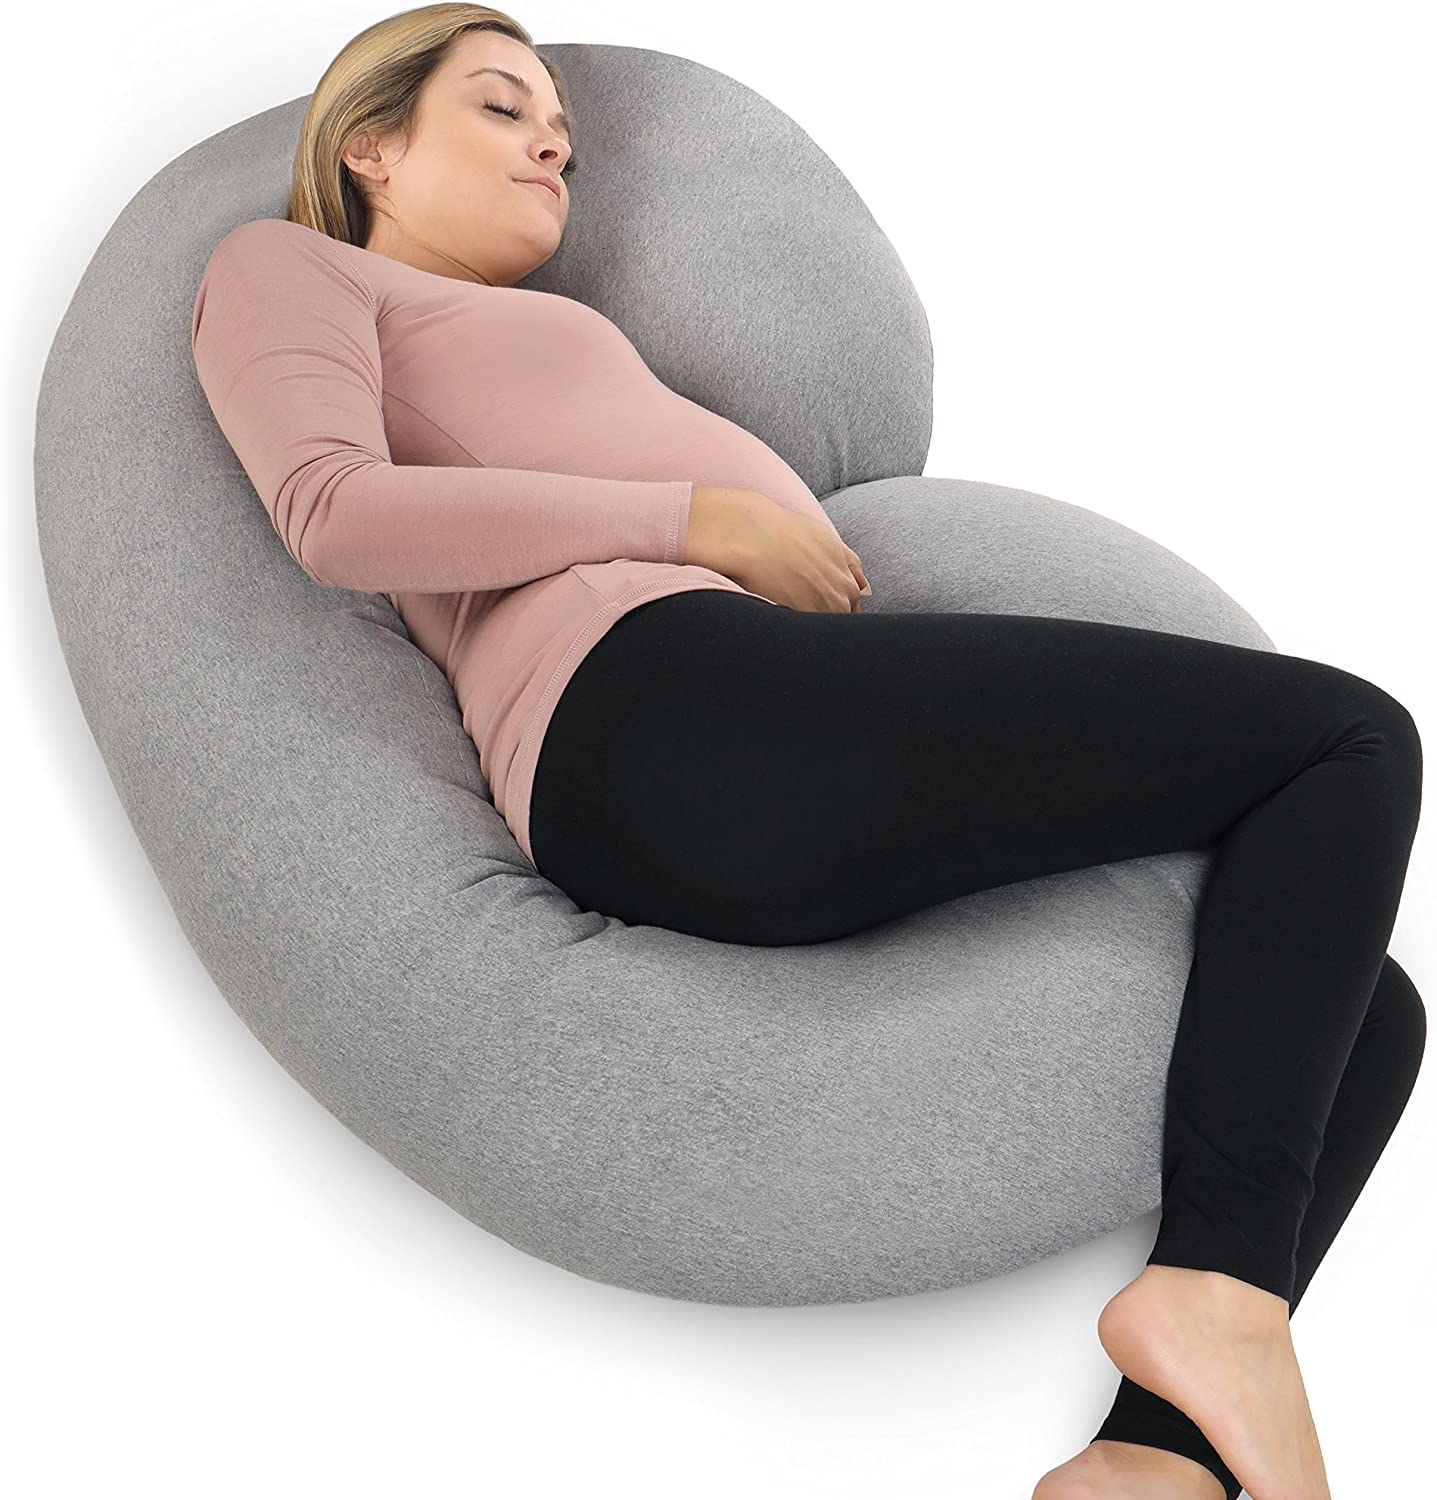 the best pregnancy pillows for hip pain